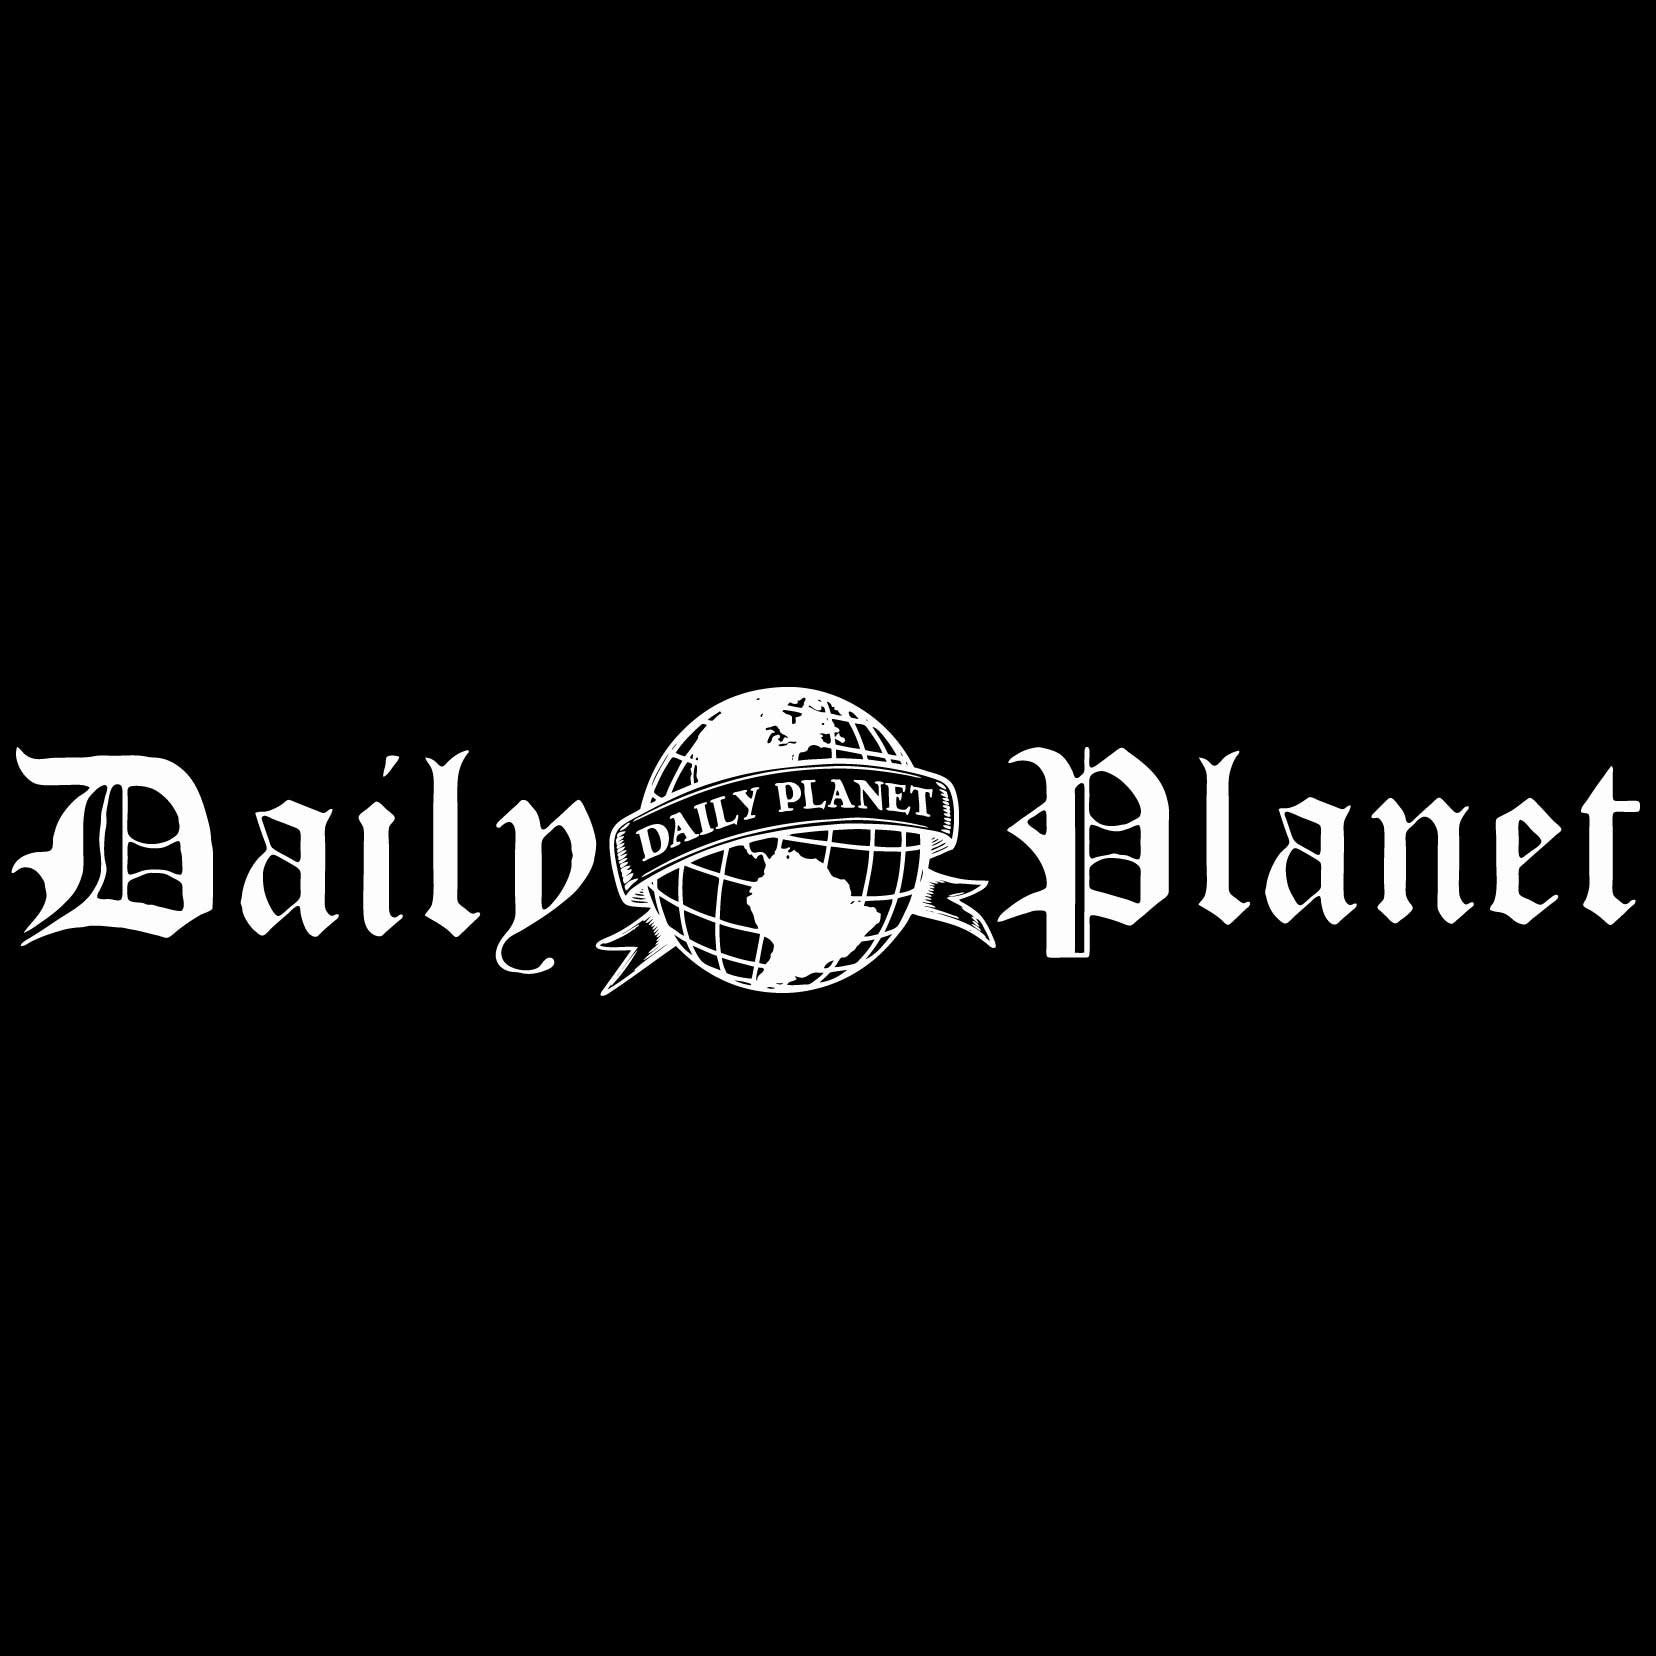 Daily Planet Logo - Vinyl Decal Sticker - For wall, vehicle, computer, home decor (116x22 inch, Matte White)